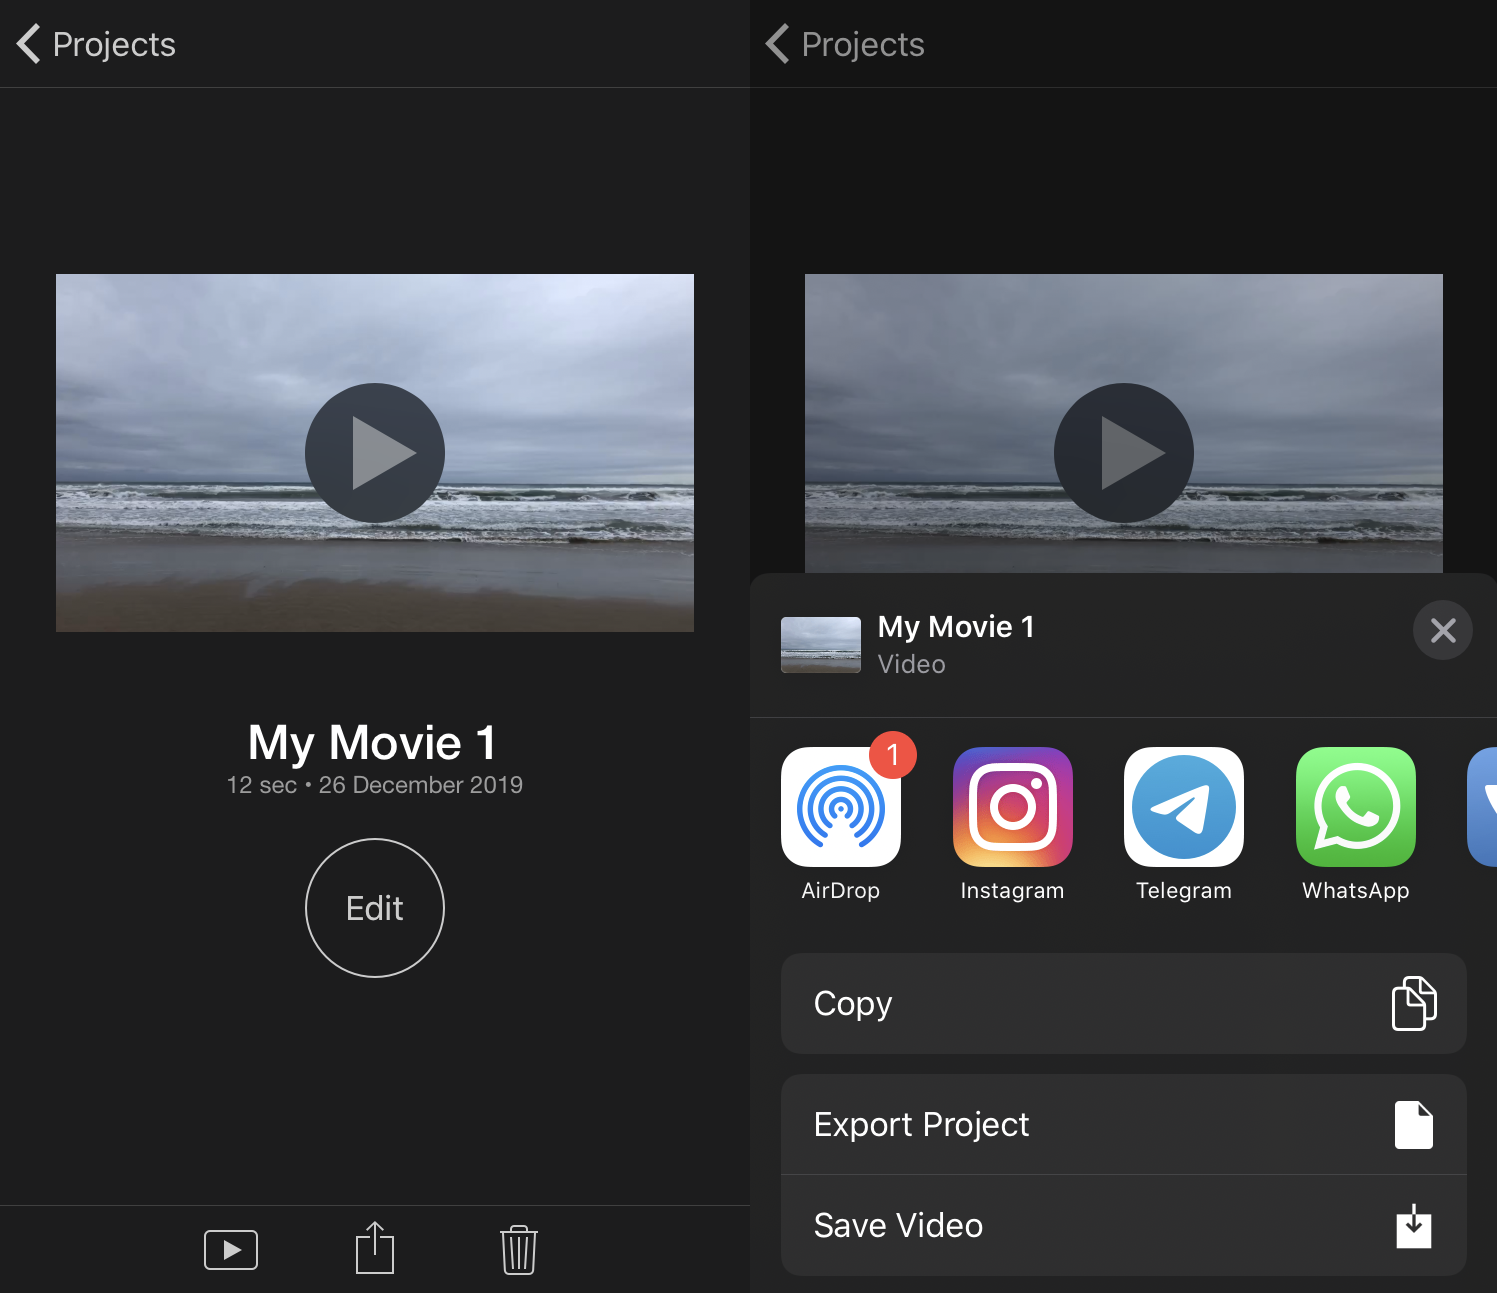 Download the rotated video from iMovie to iPhone